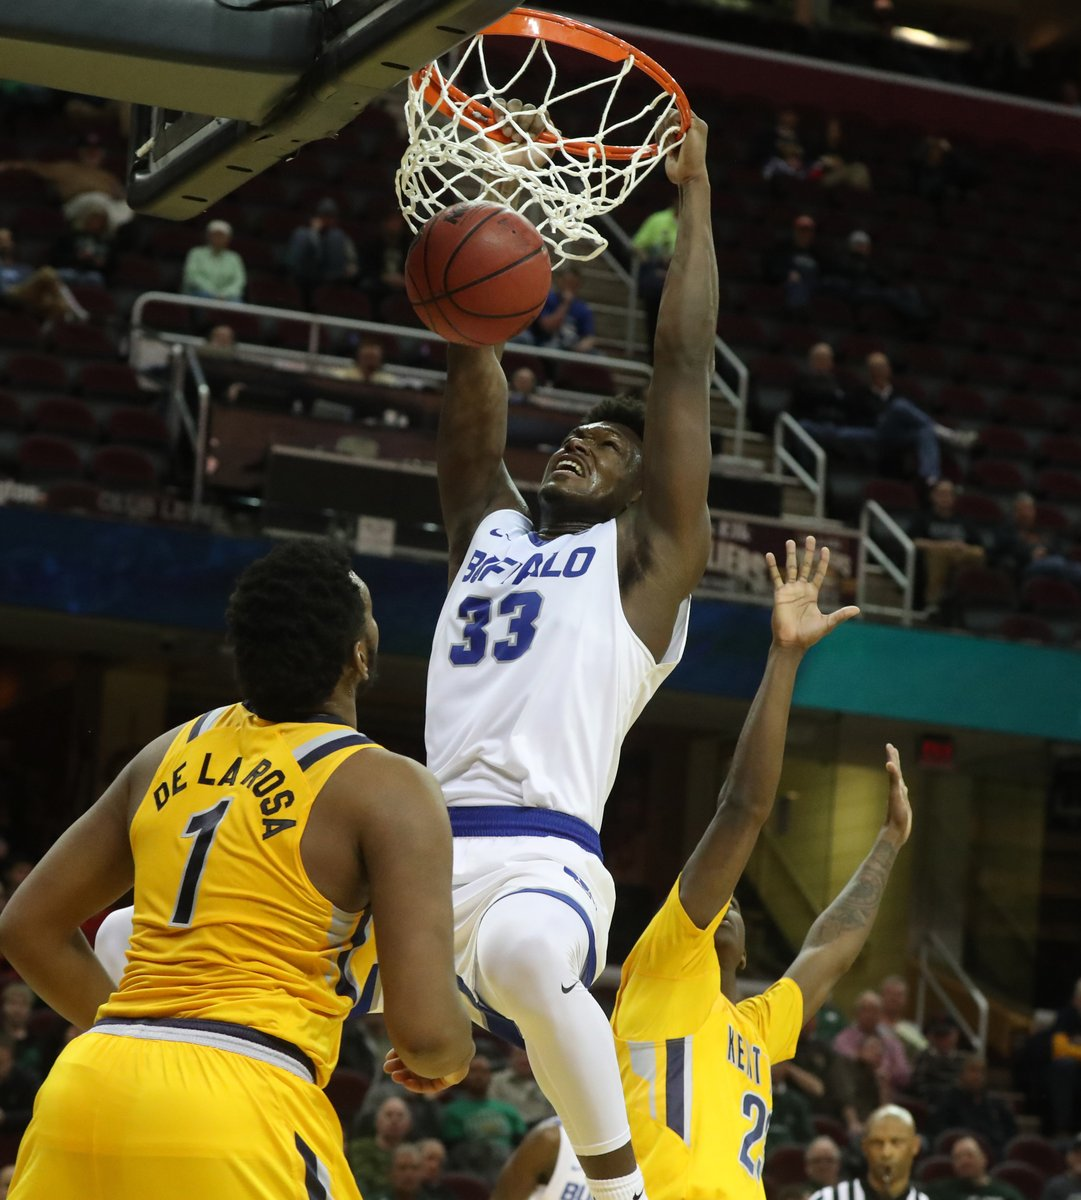 UB's Nick Perkins dunks vs. Kent State. (James P. McCoy/Buffalo News)